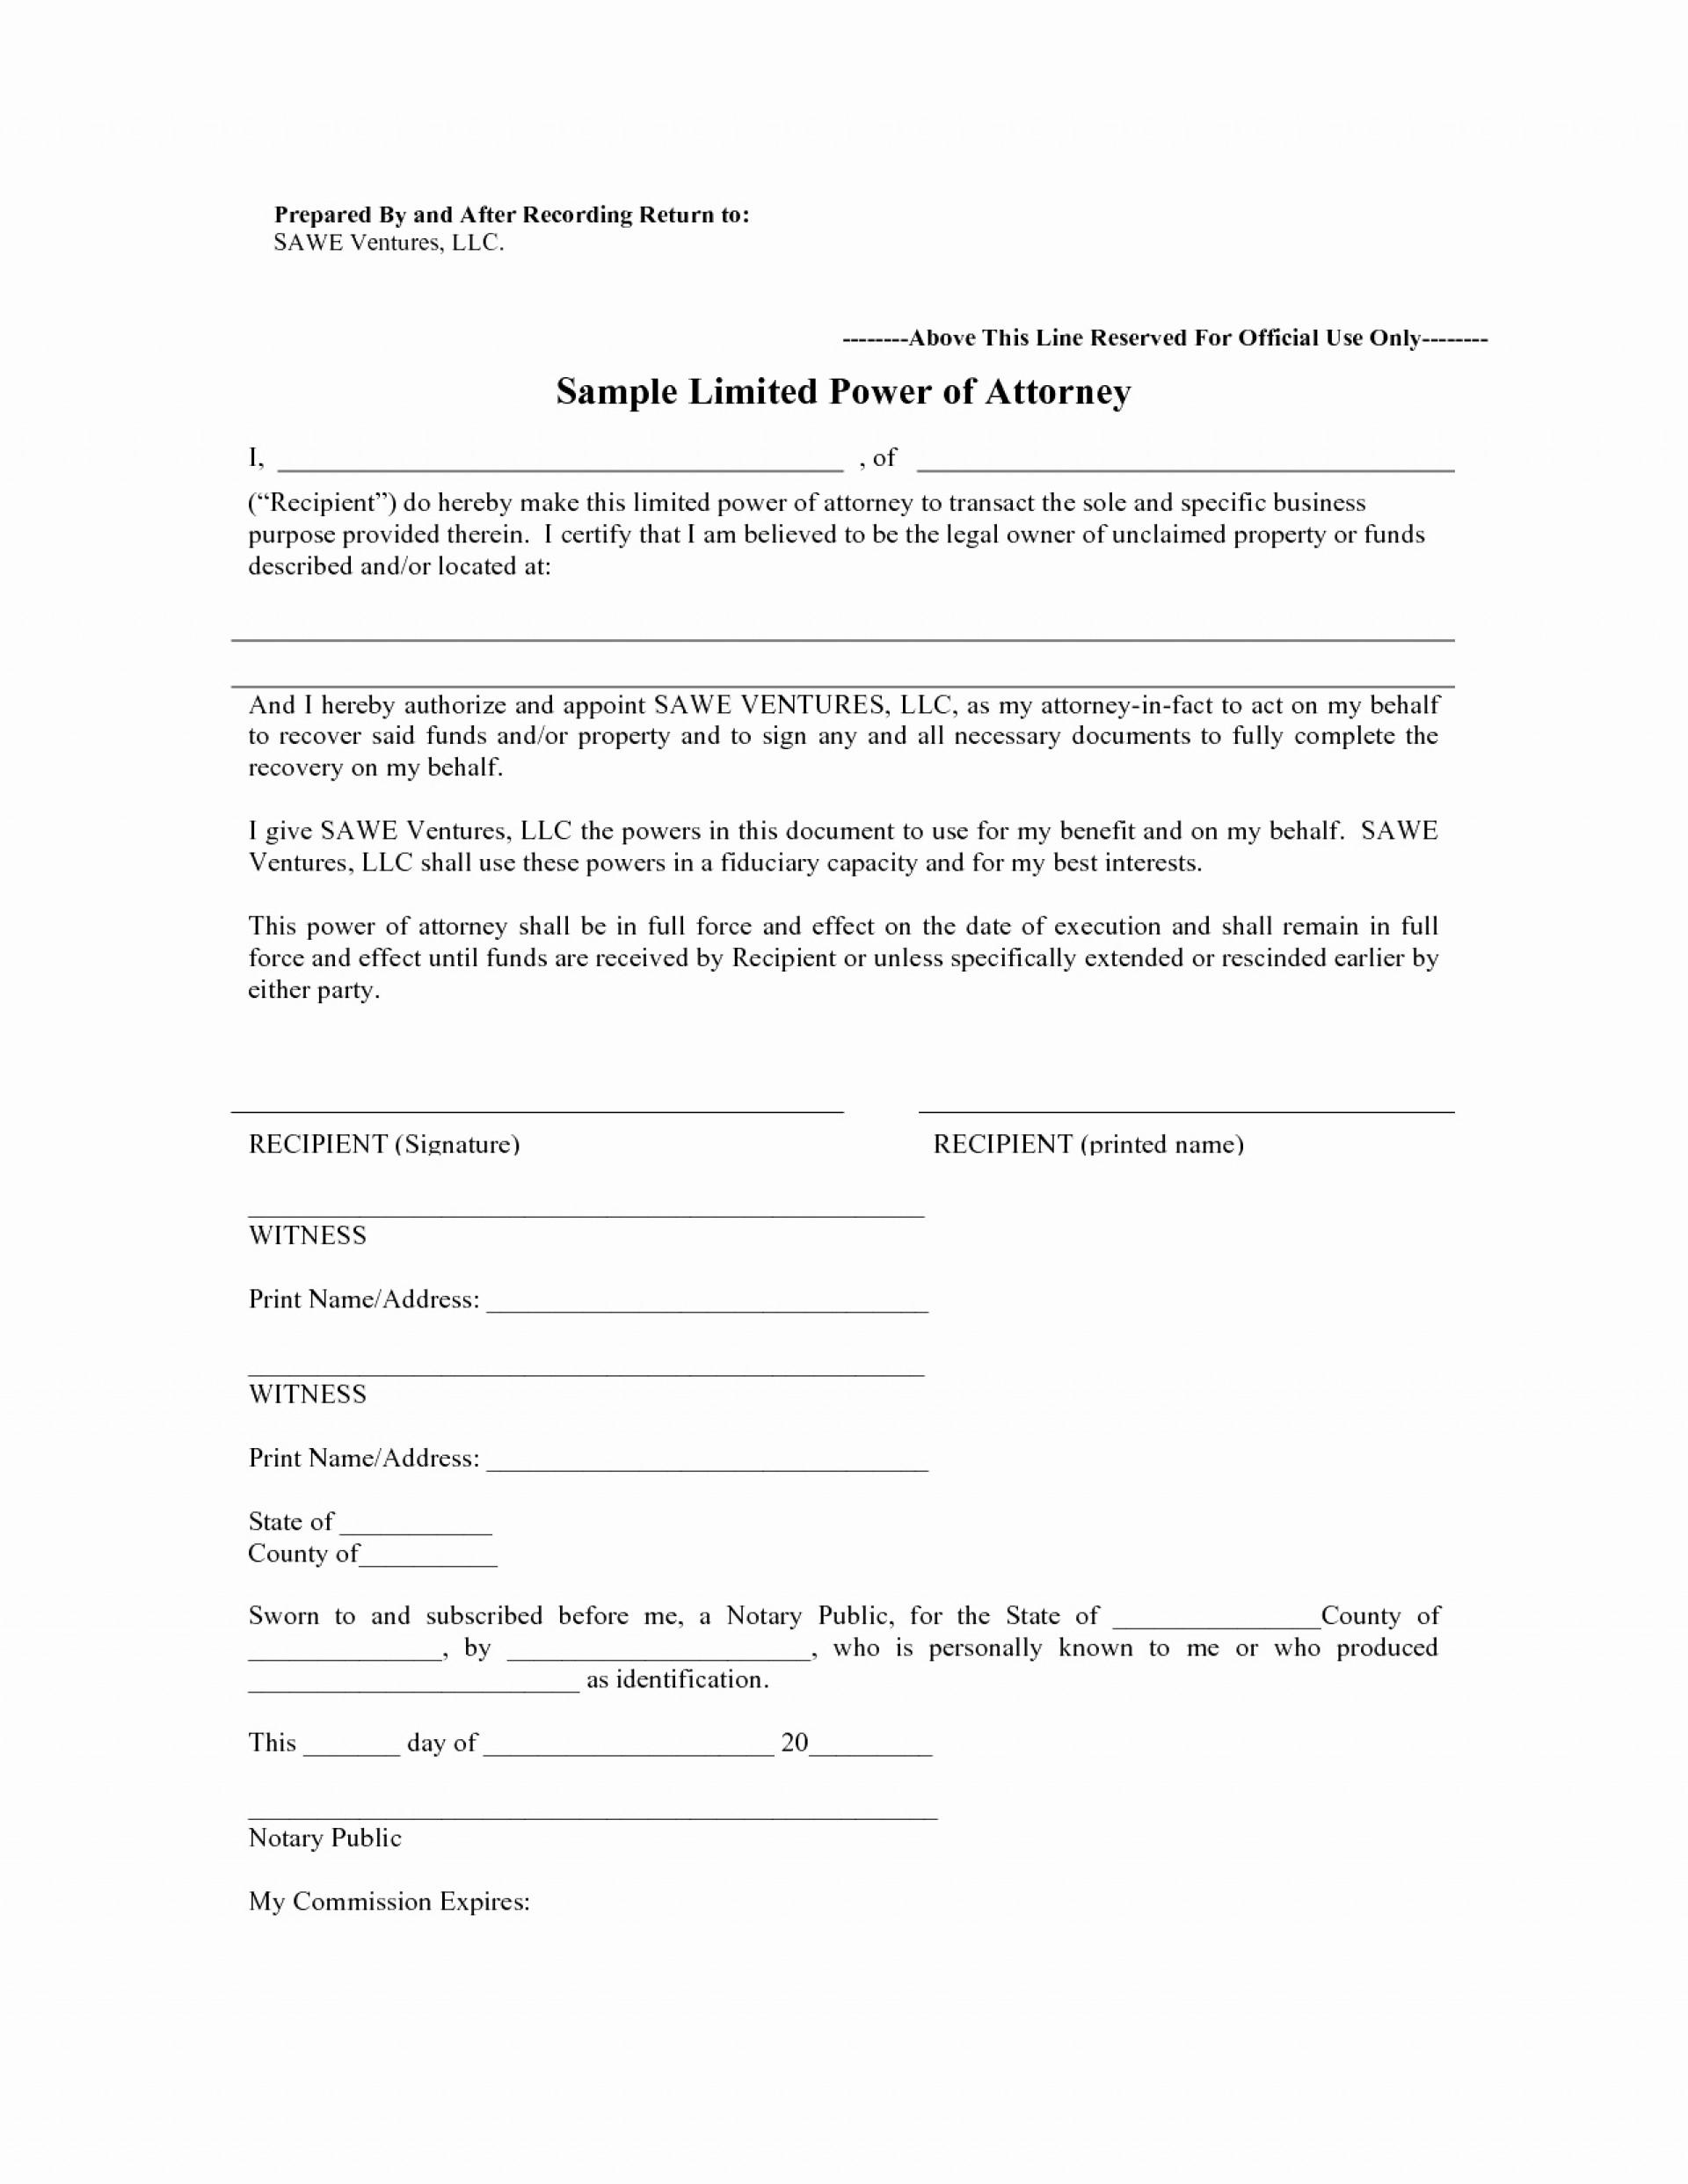 Utah Statutory Power Of Attorney Form